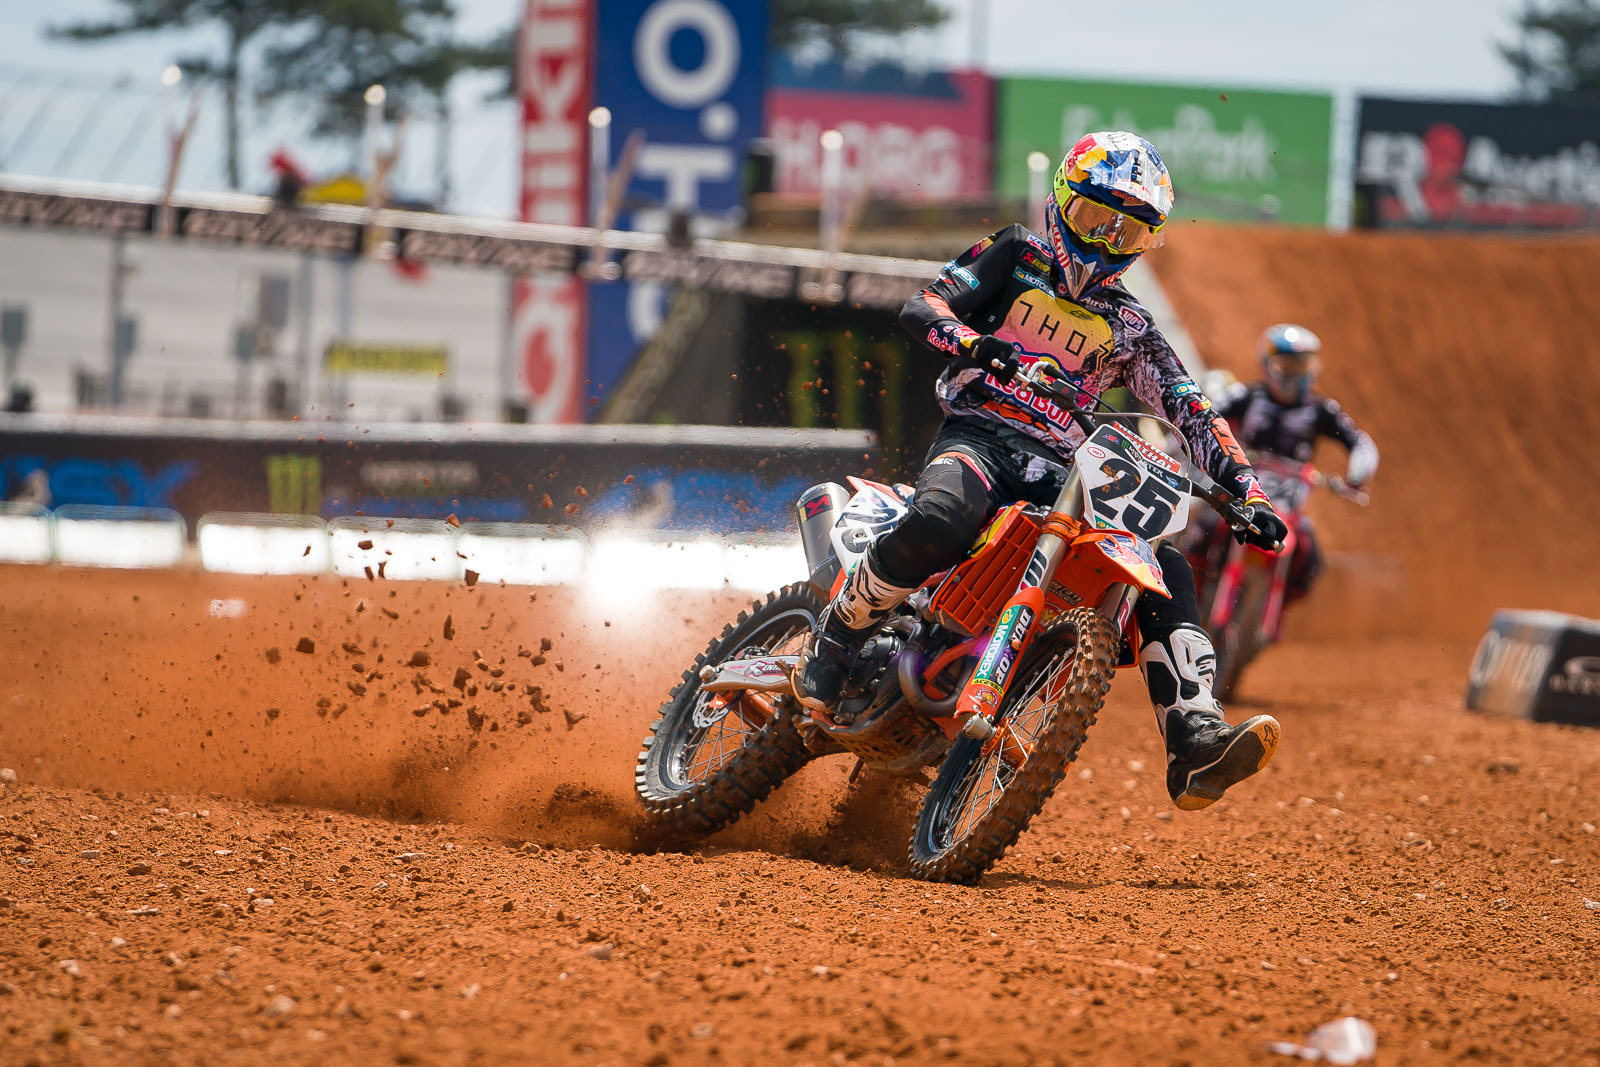 2021-ATLANTA-THREE-SUPERCROSS_KICKSTART_0948